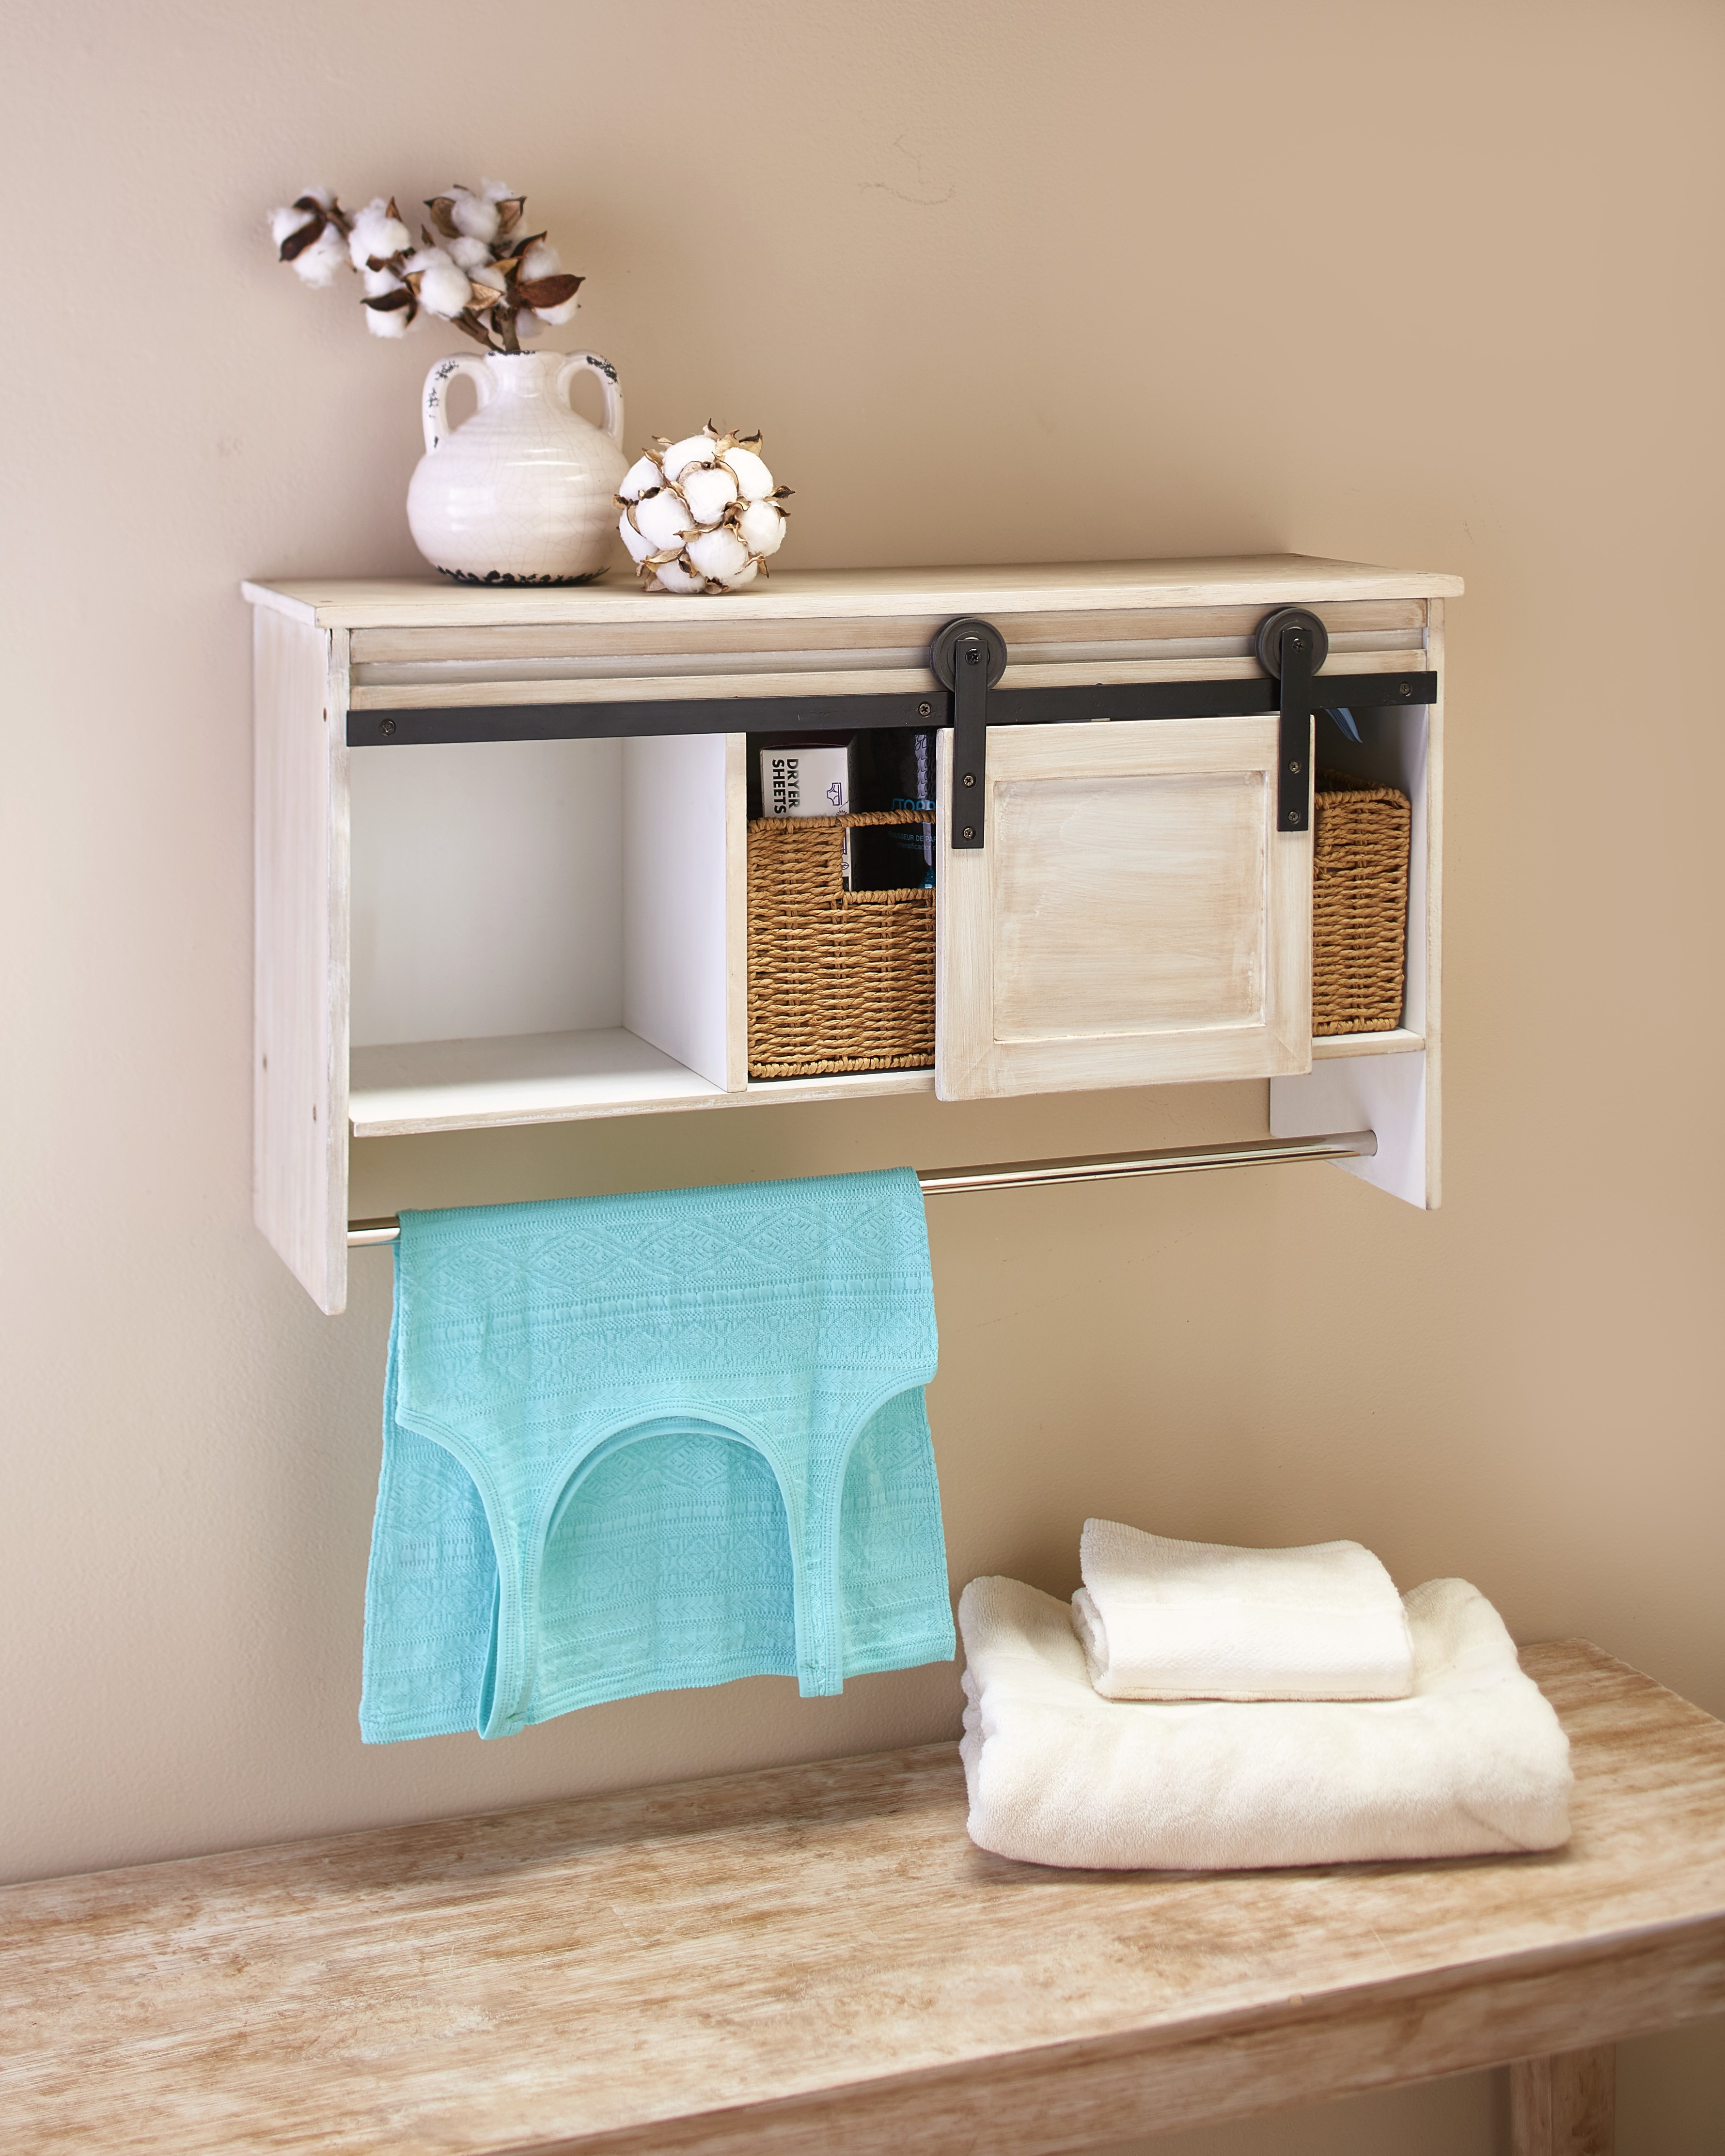 Barn Door Wall Cabinet with Towel Rods for Linens with Distressed Finish